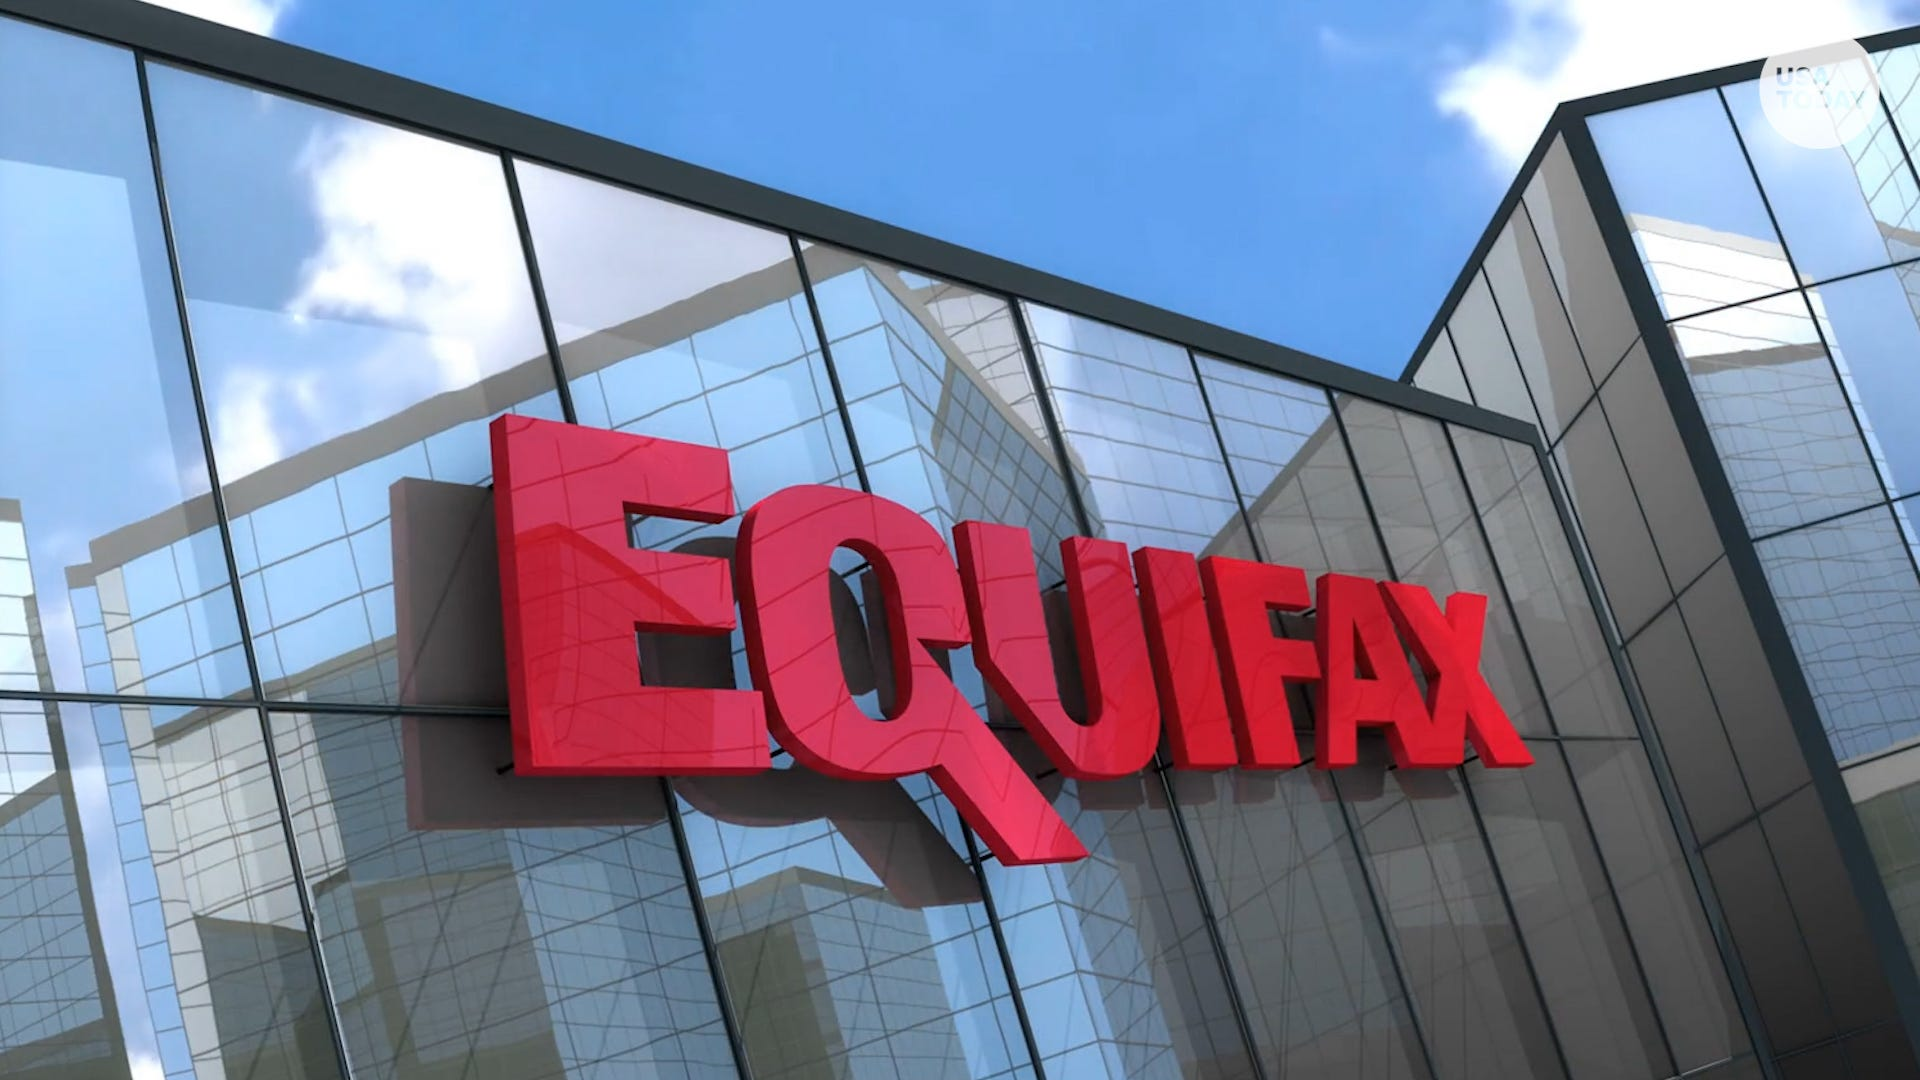 Capital One, Equifax data breaches push 2019 total to alarming amount